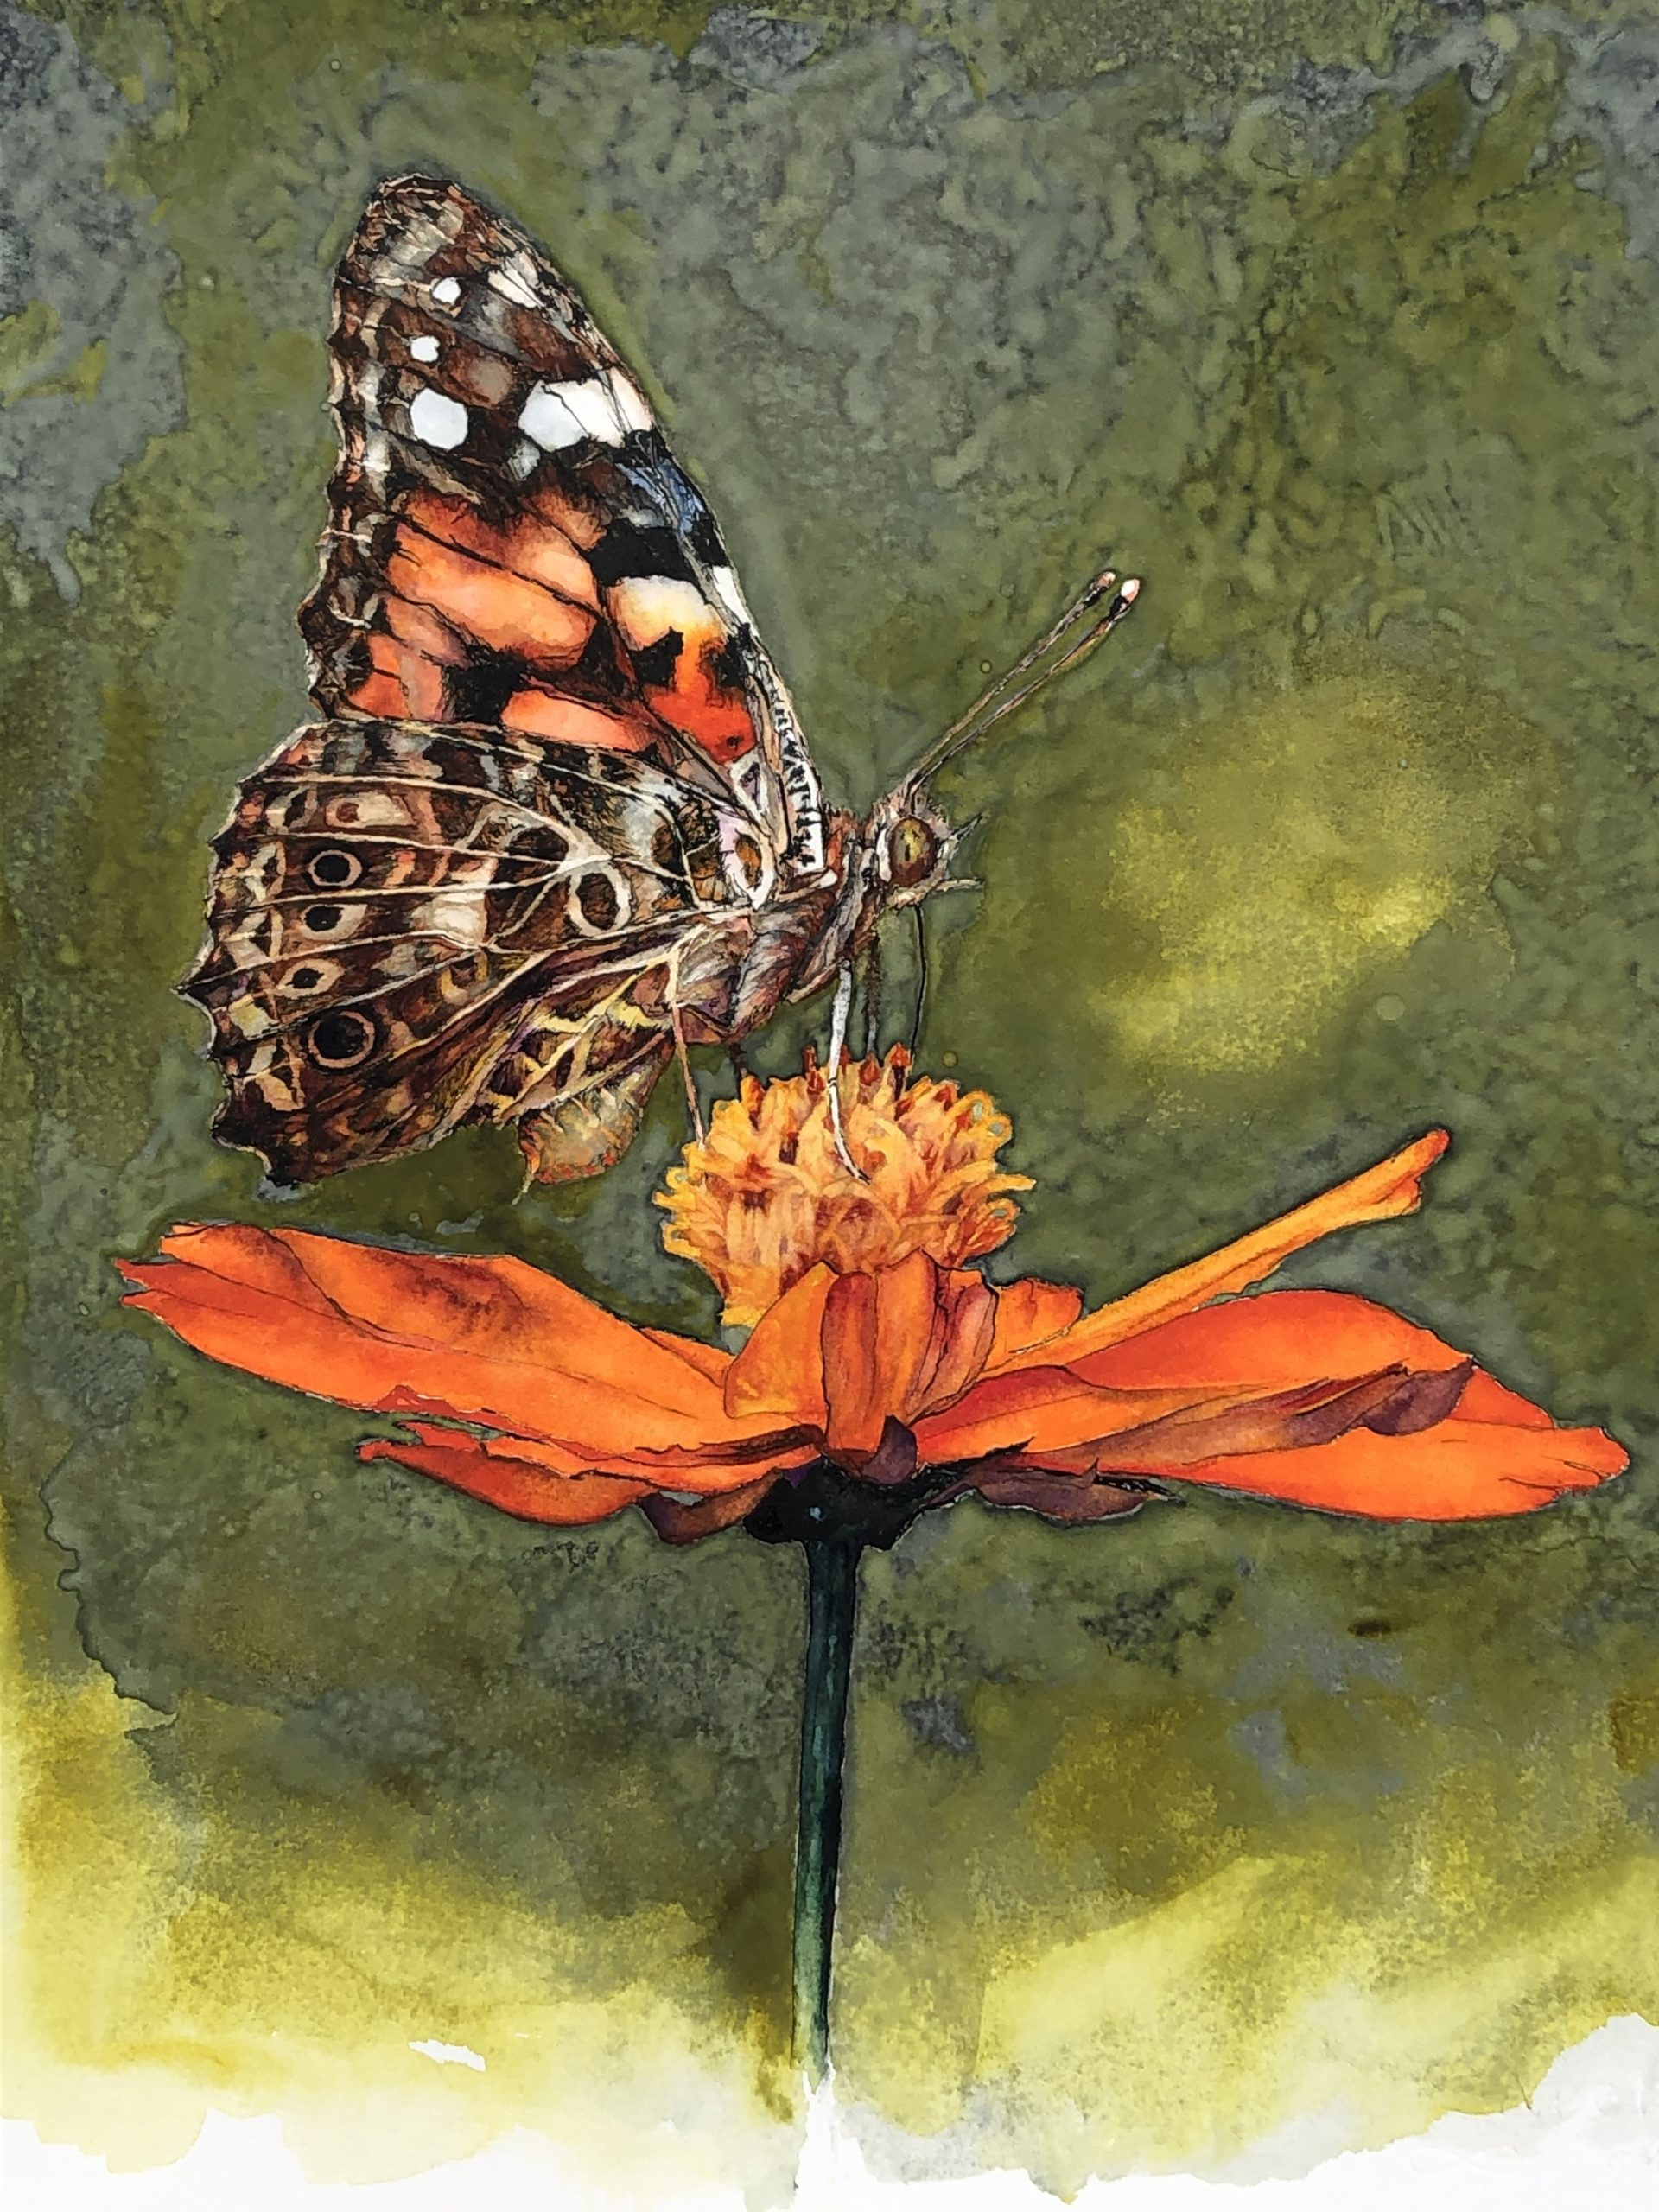 Butterfly on orange flower illustration